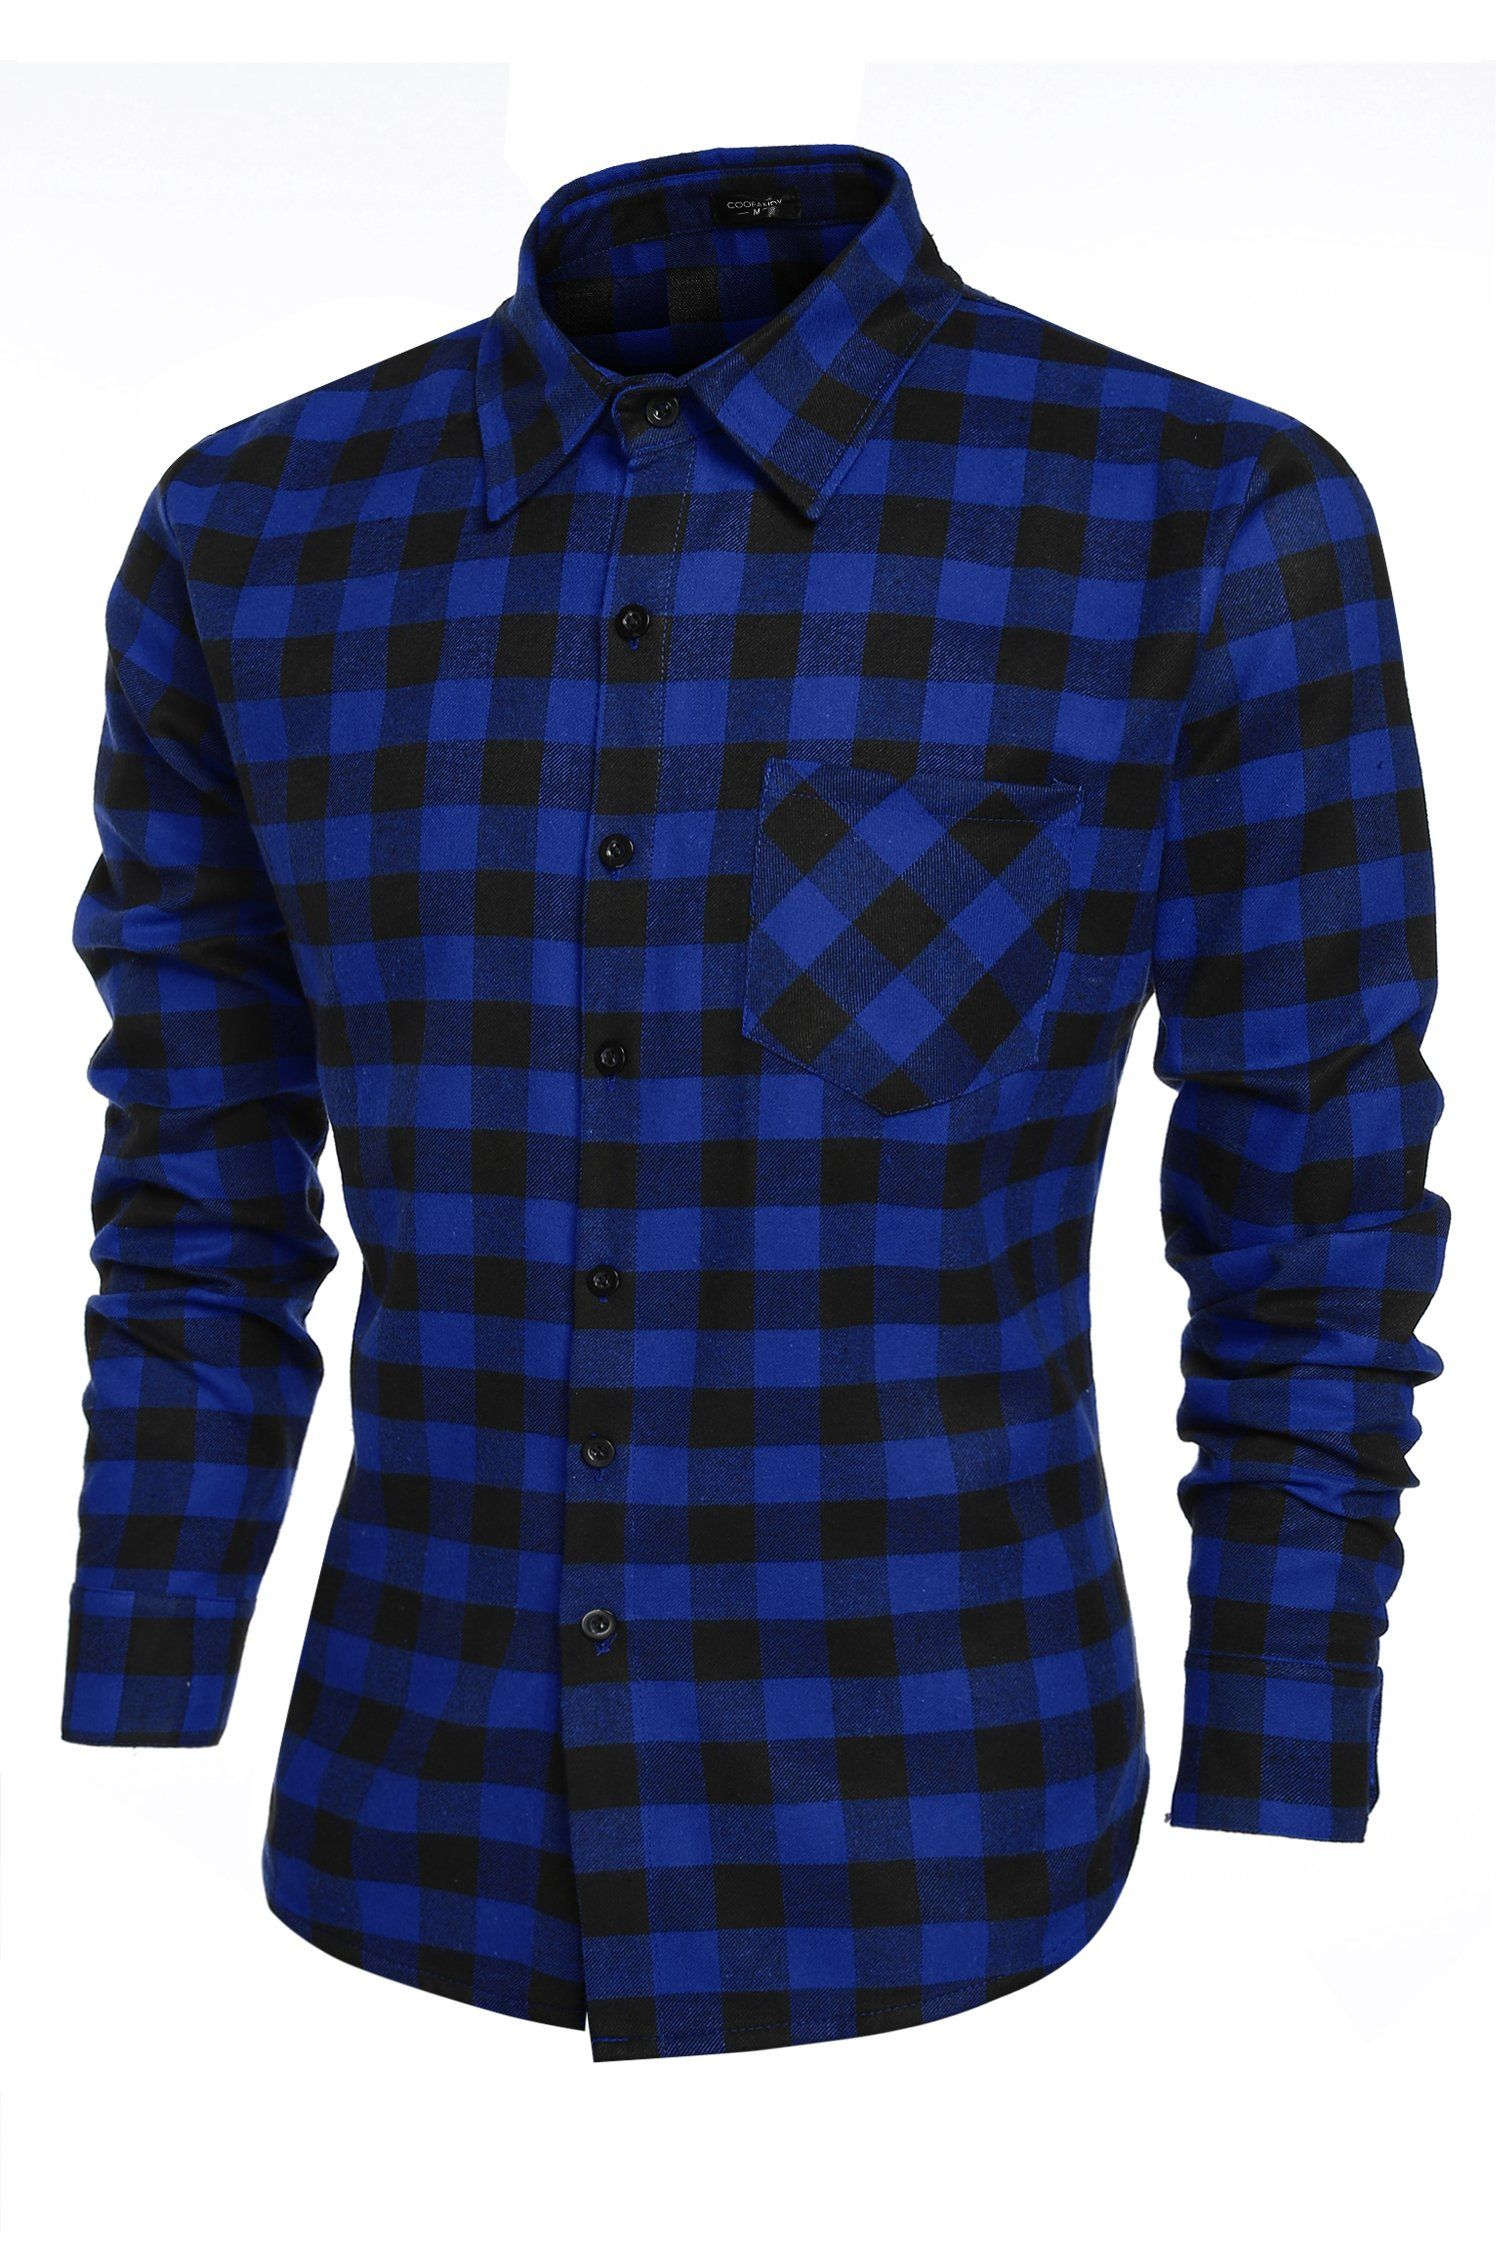 Coofandy Casual Plaid Long Sleeve Shirt Slim Fit T-shirts (Small, Green) at  Amazon Men's Clothing store: